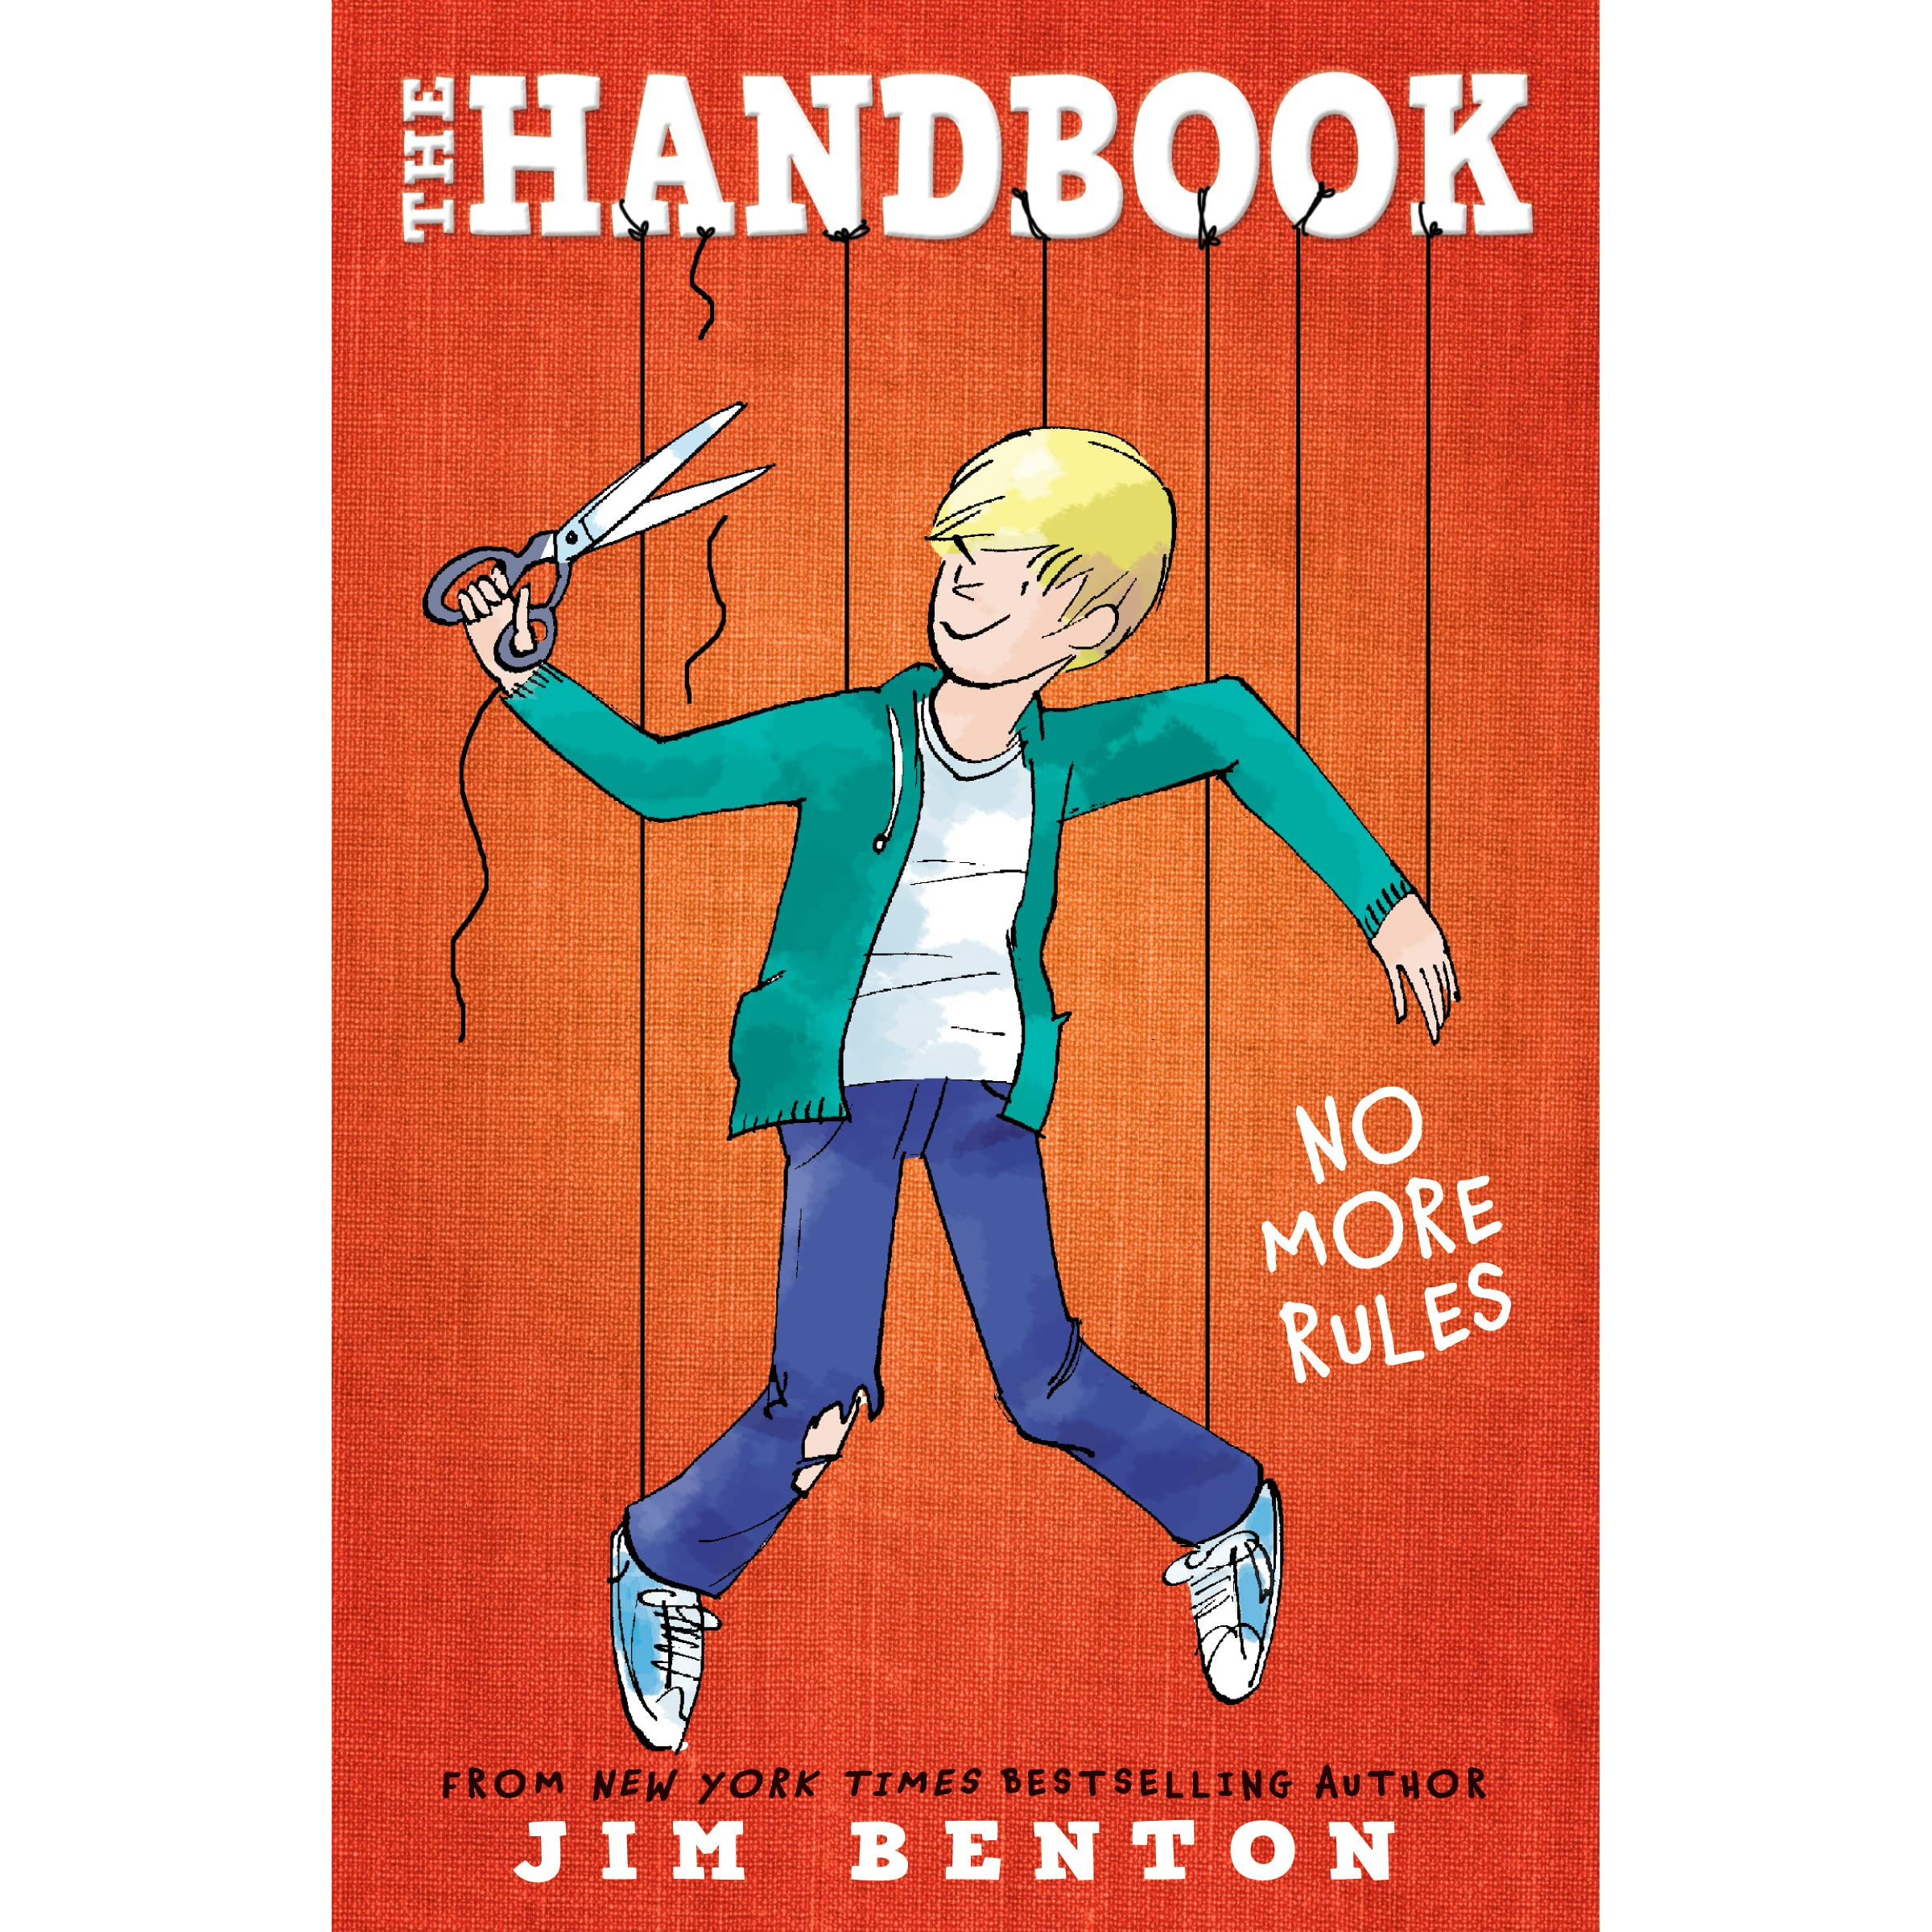 Image result for The Handbook by Jim Benton notes